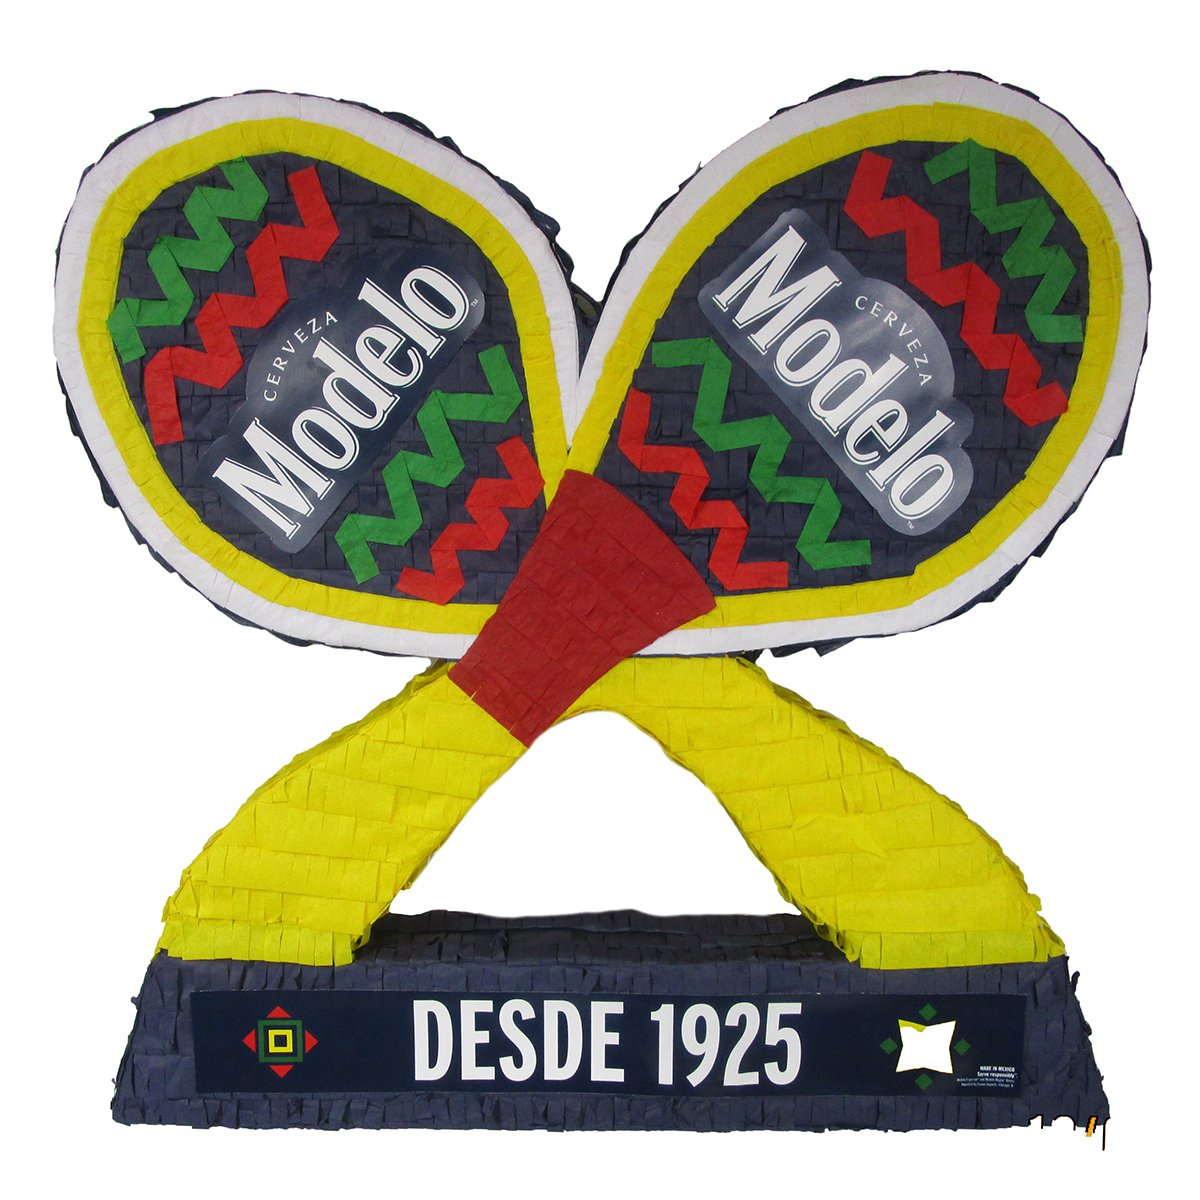 CUSTOM CORPORATE LOGO PINATA - FIESTA MARACAS